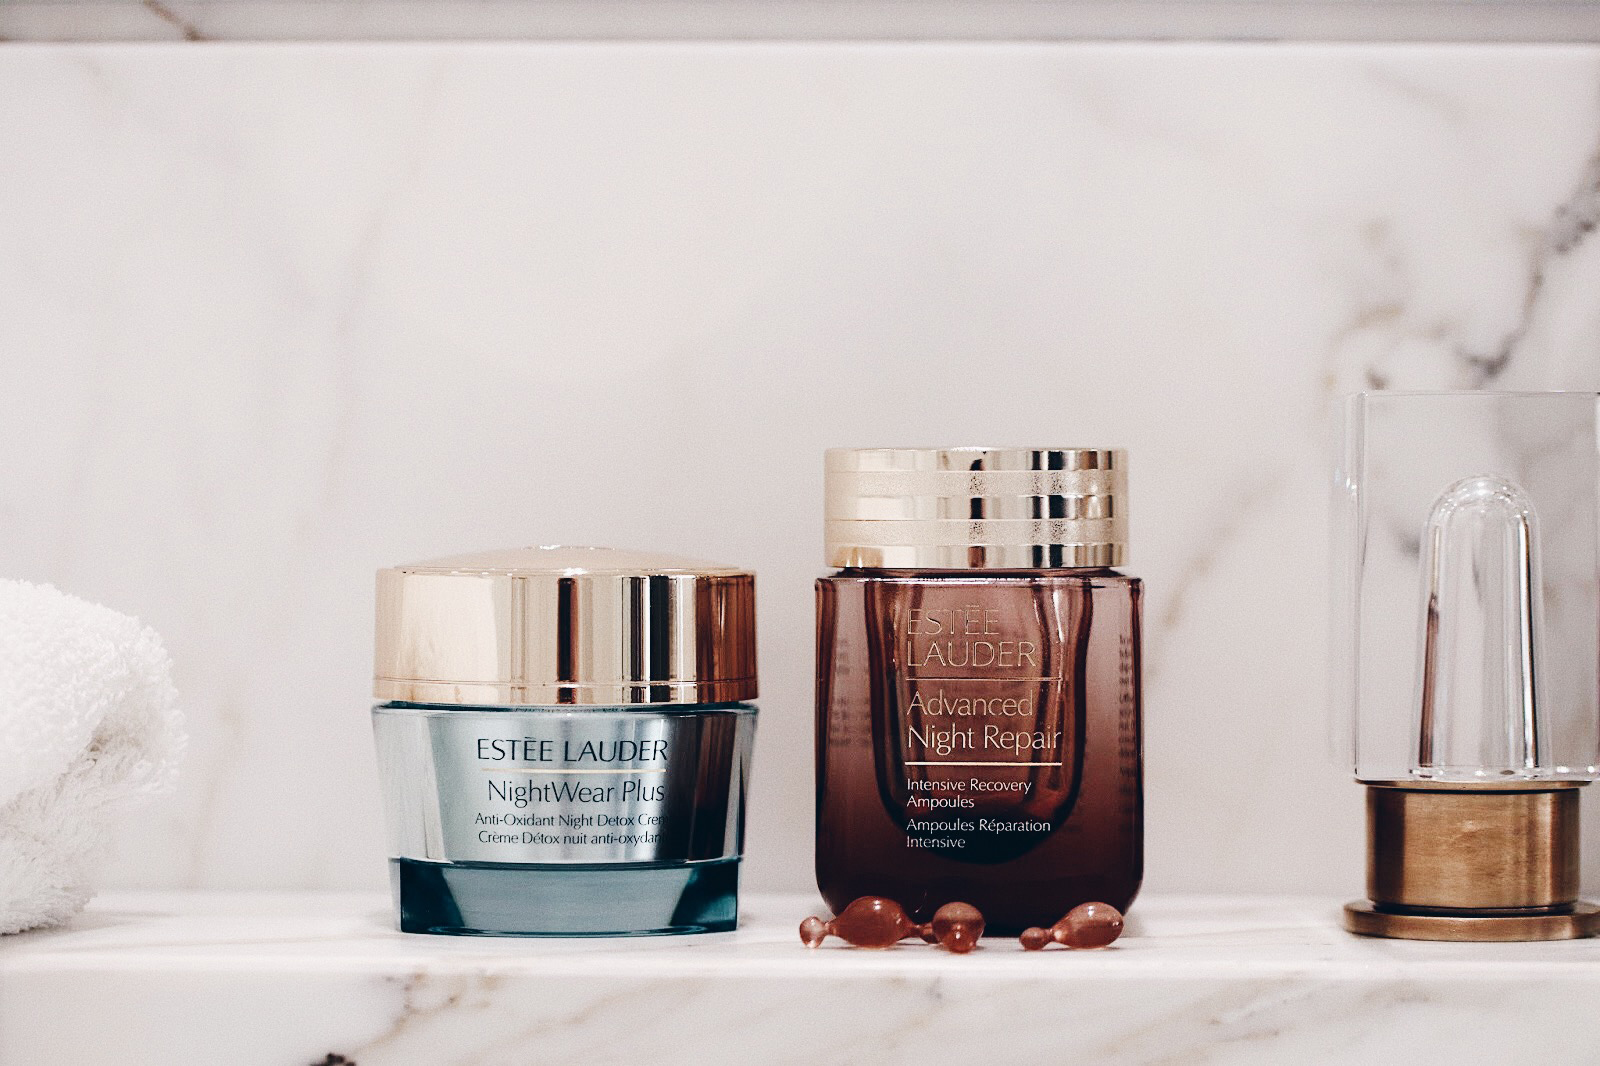 estee lauder advanced night repair ampoules nuit night wear plus creme detox nuit avis test